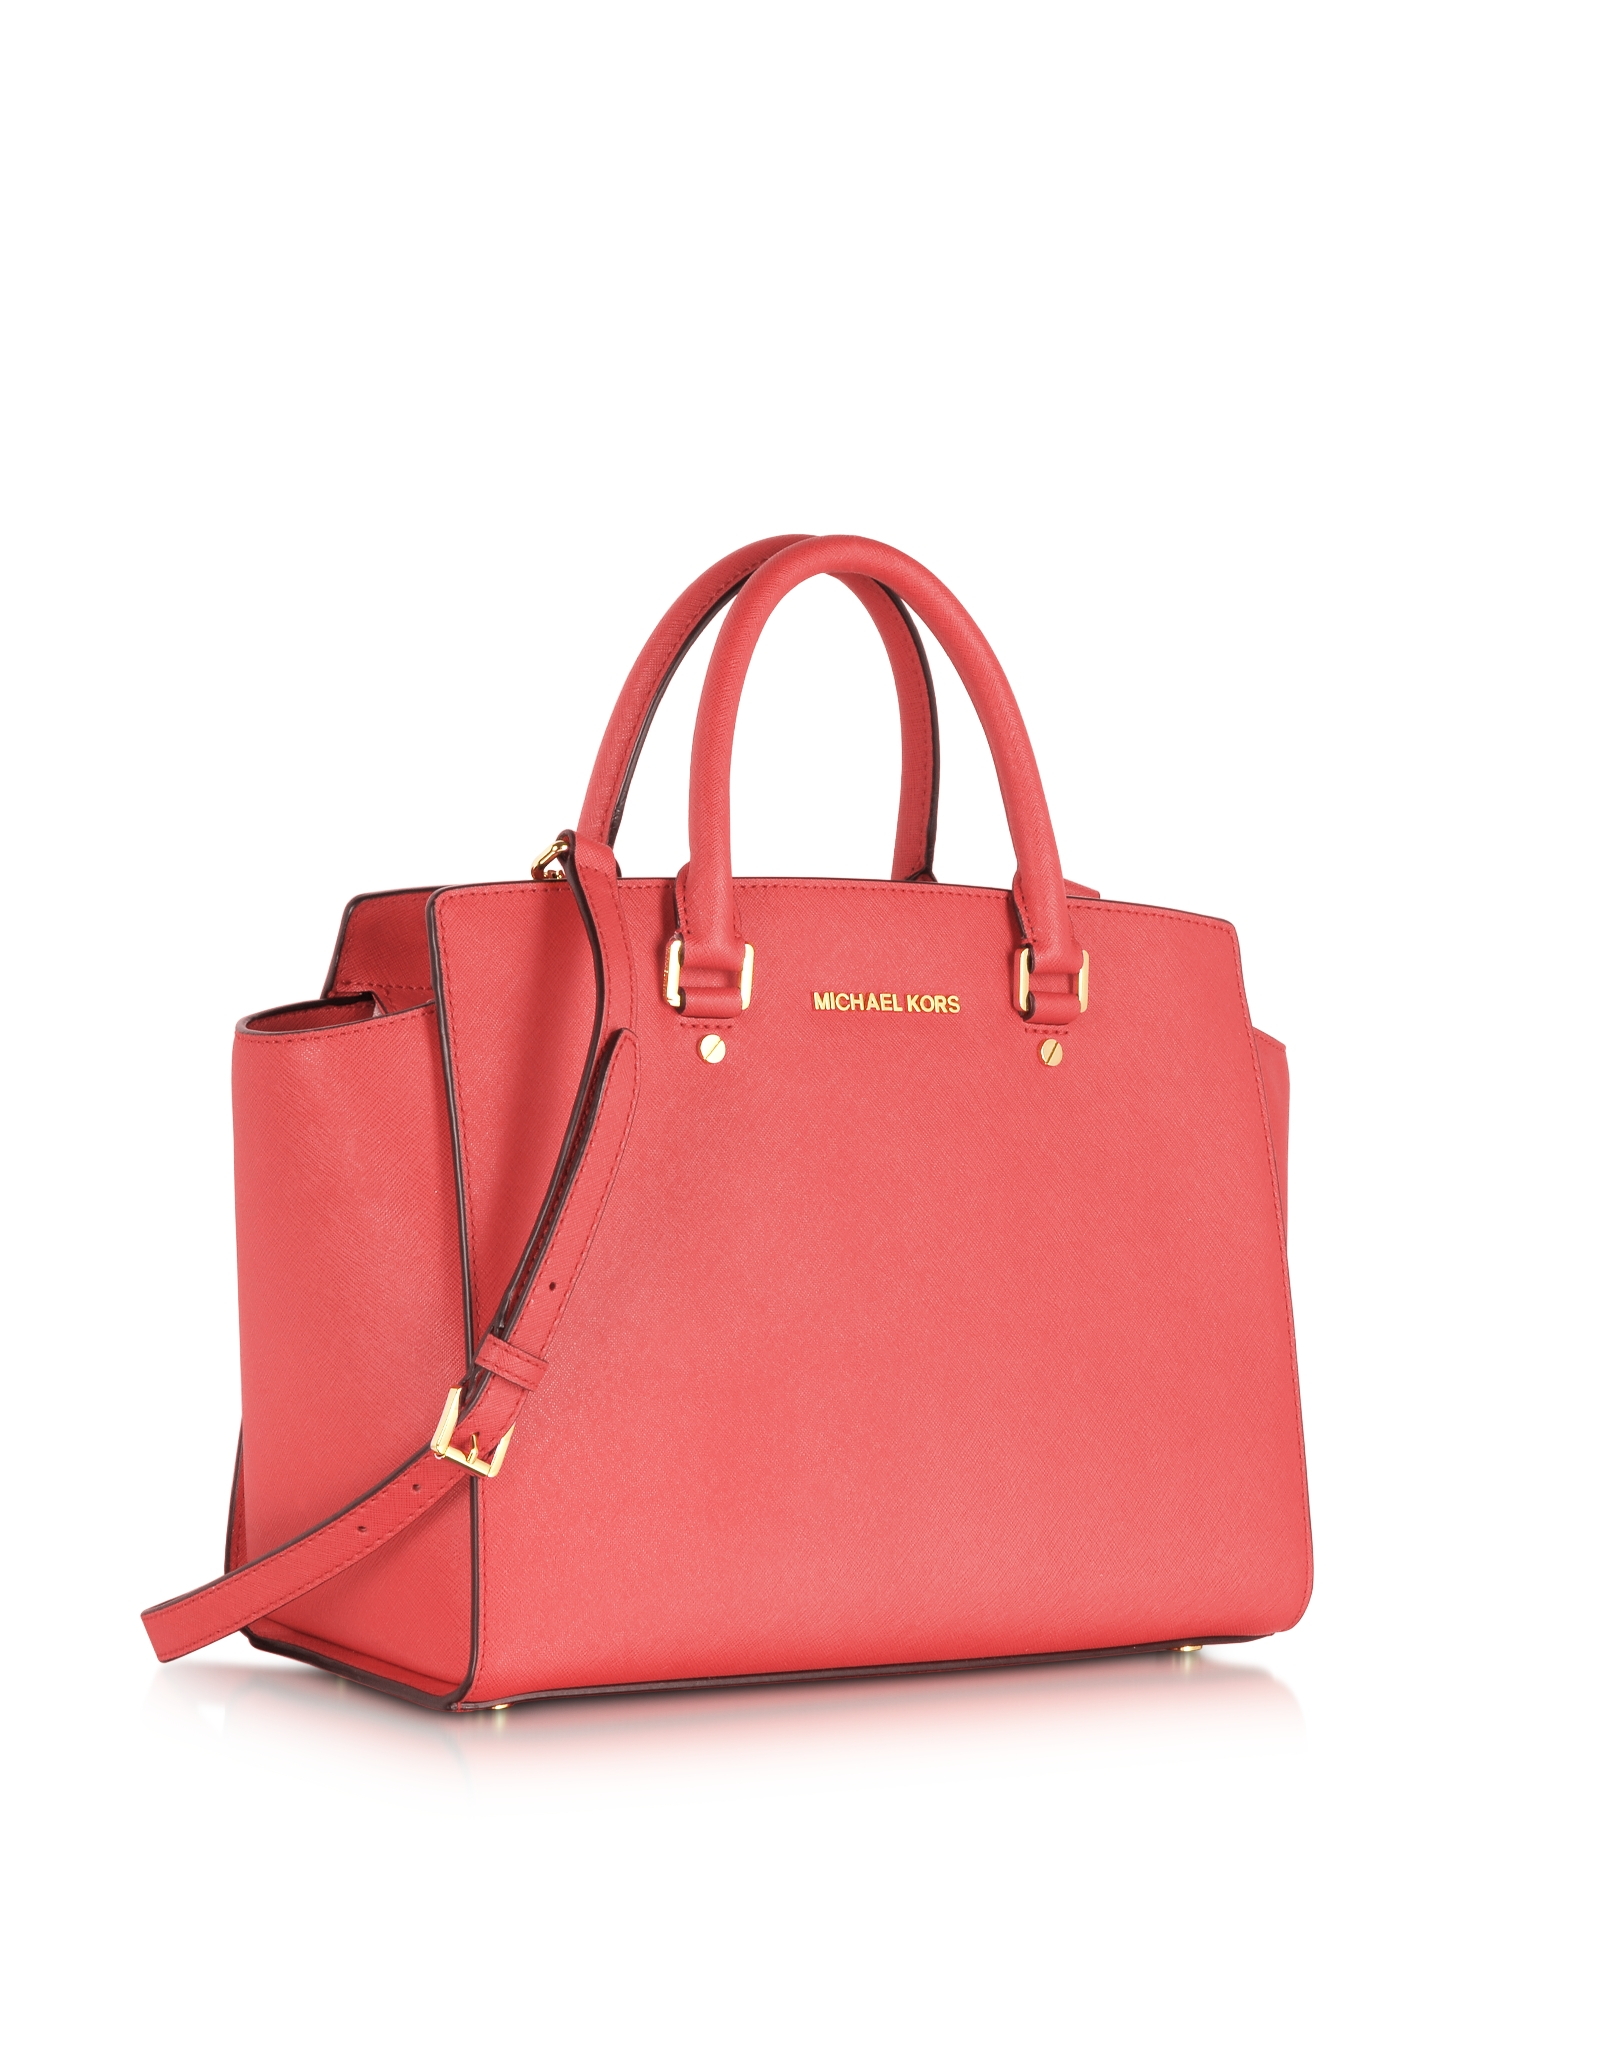 815db4665250 Michael Kors Large Selma Top-zip Saffiano Leather Satchel in Red - Lyst